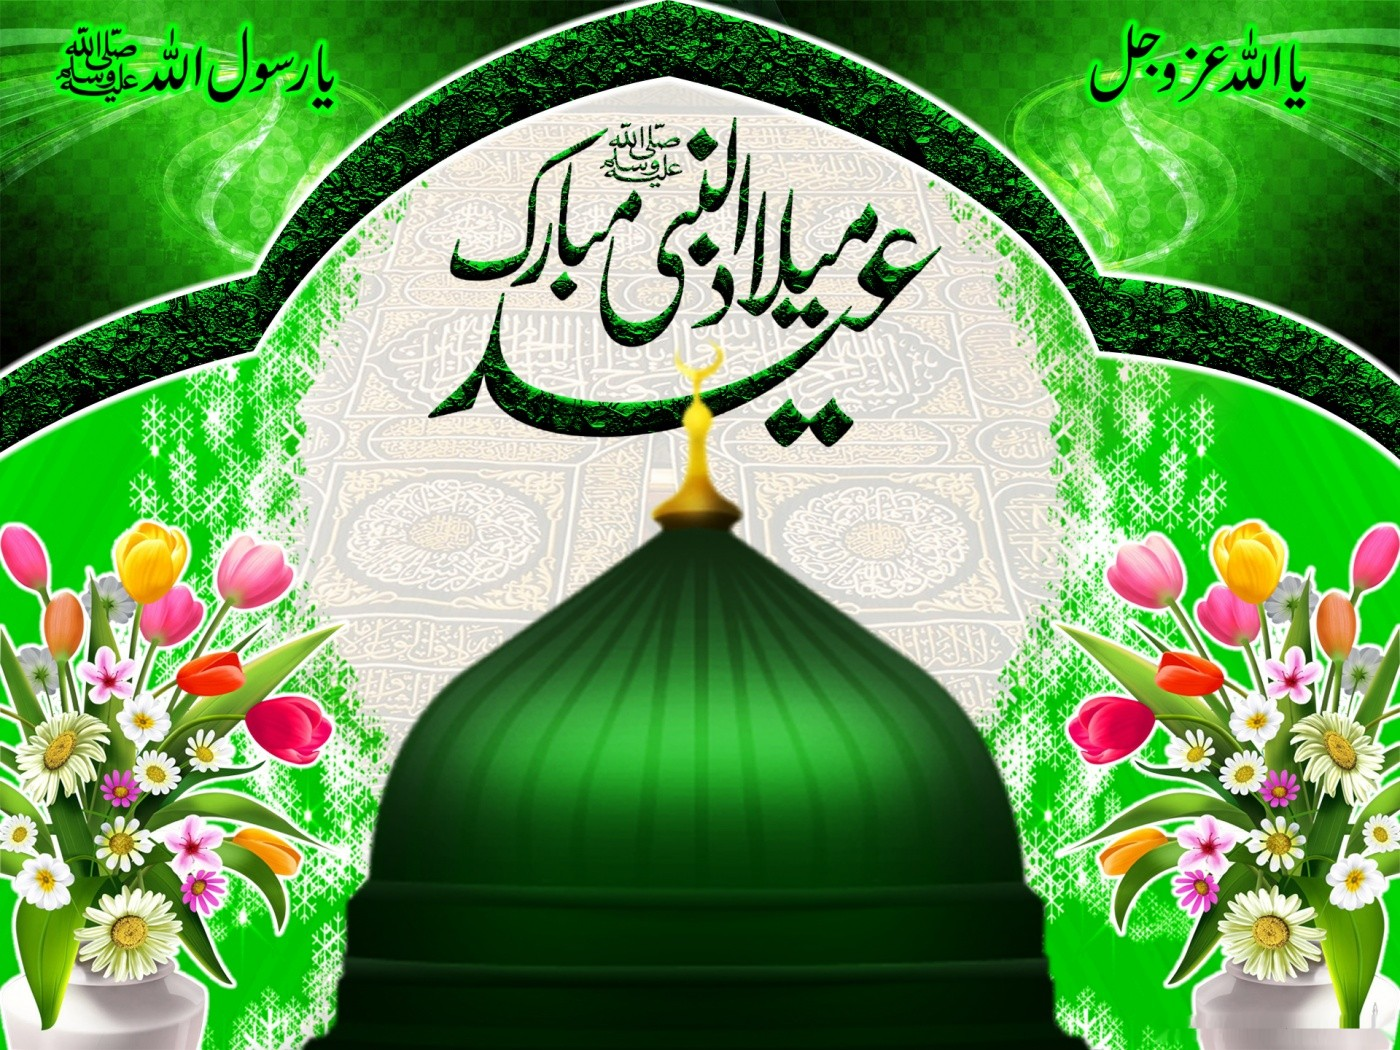 Rabi Ul Awal Mubarak Wallpapers hd islamic pics